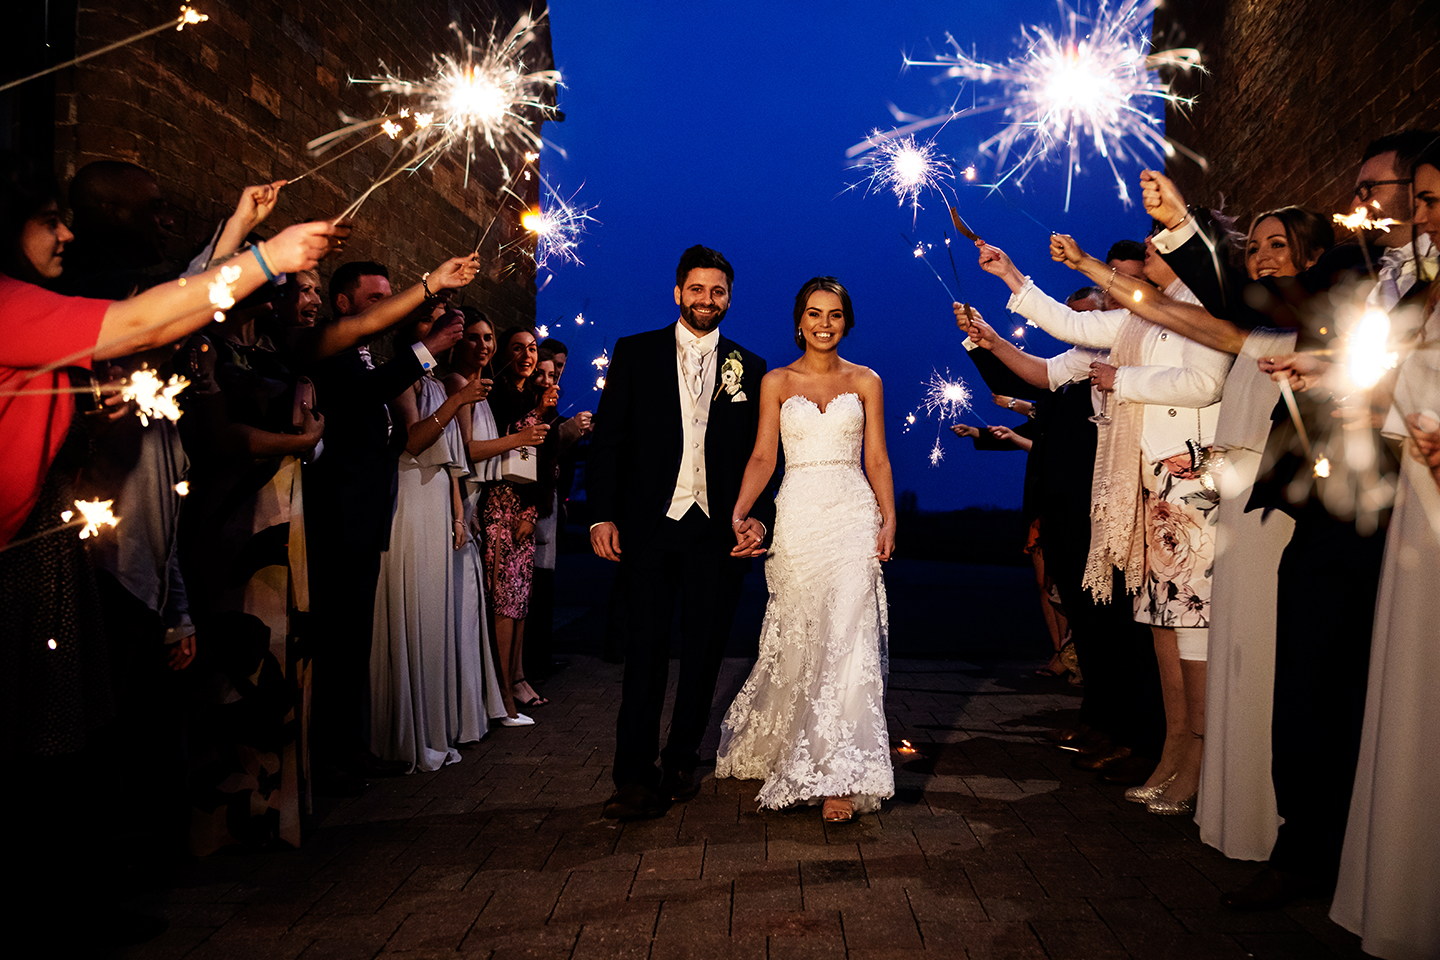 The bride and groom walk through a line of sparklers as their wedding day at Bassmead Manor Barns comes to an end